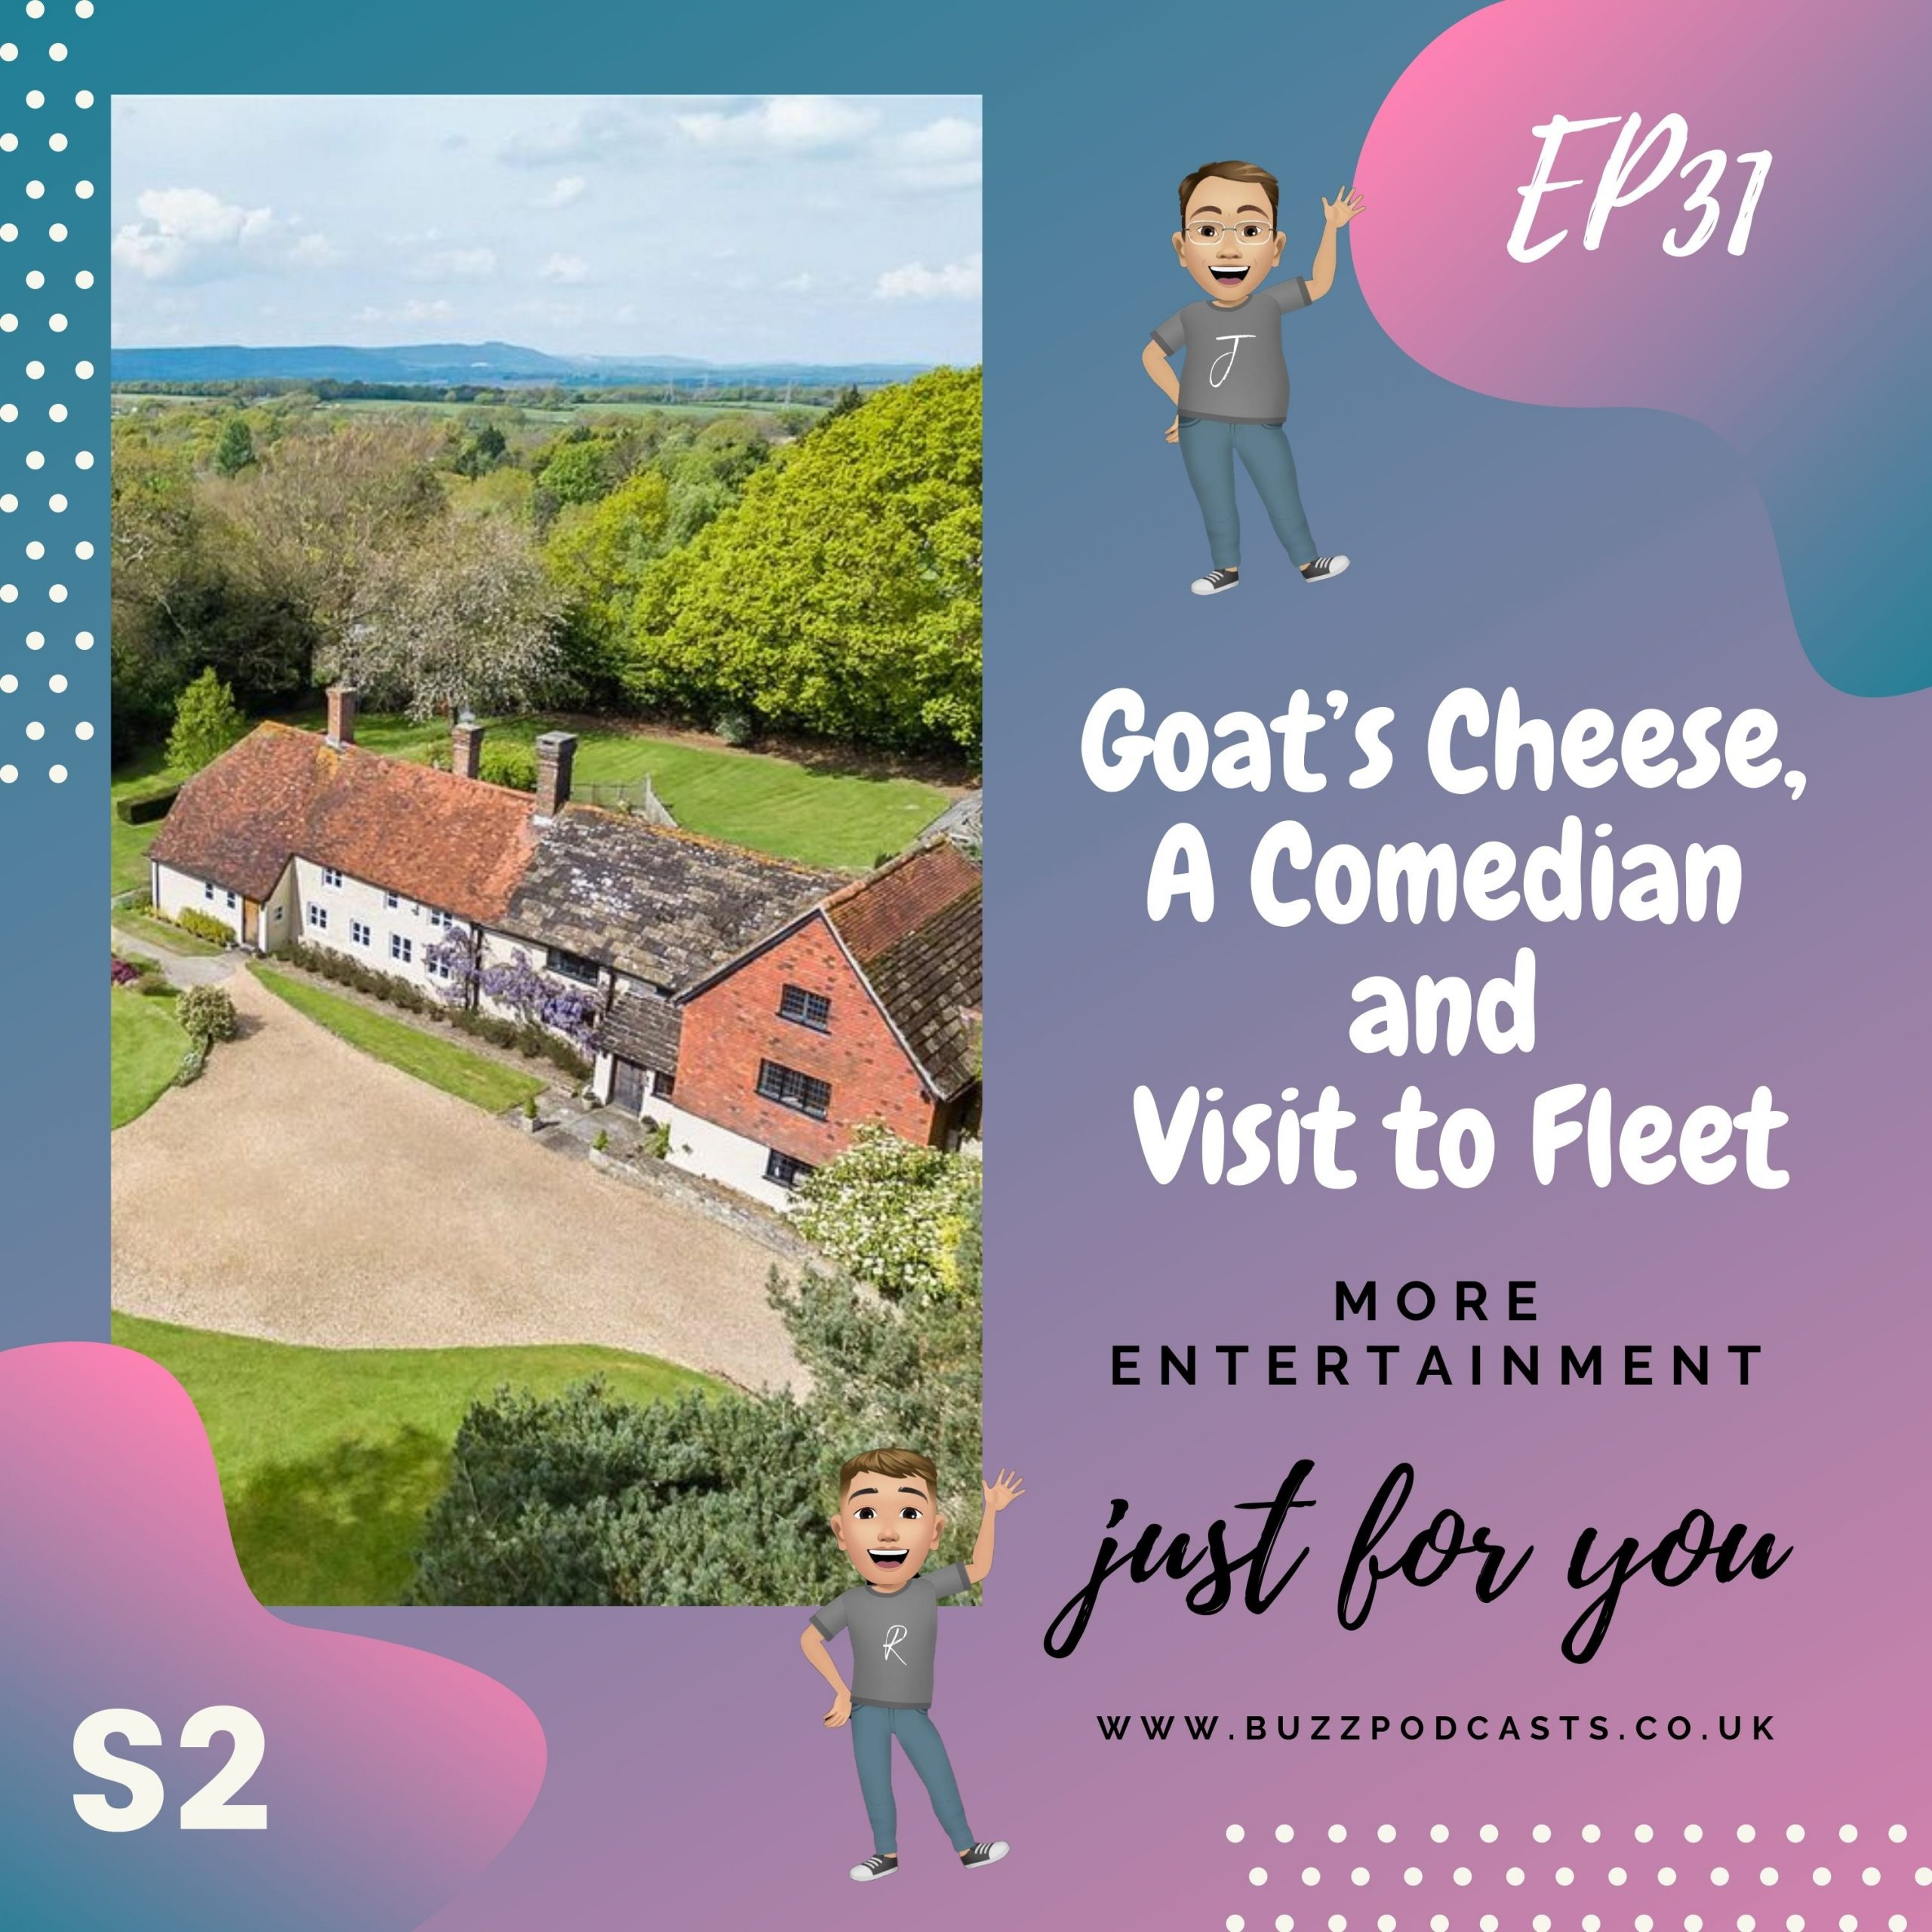 Goat's Cheese, A Comedian and Visit to Fleet